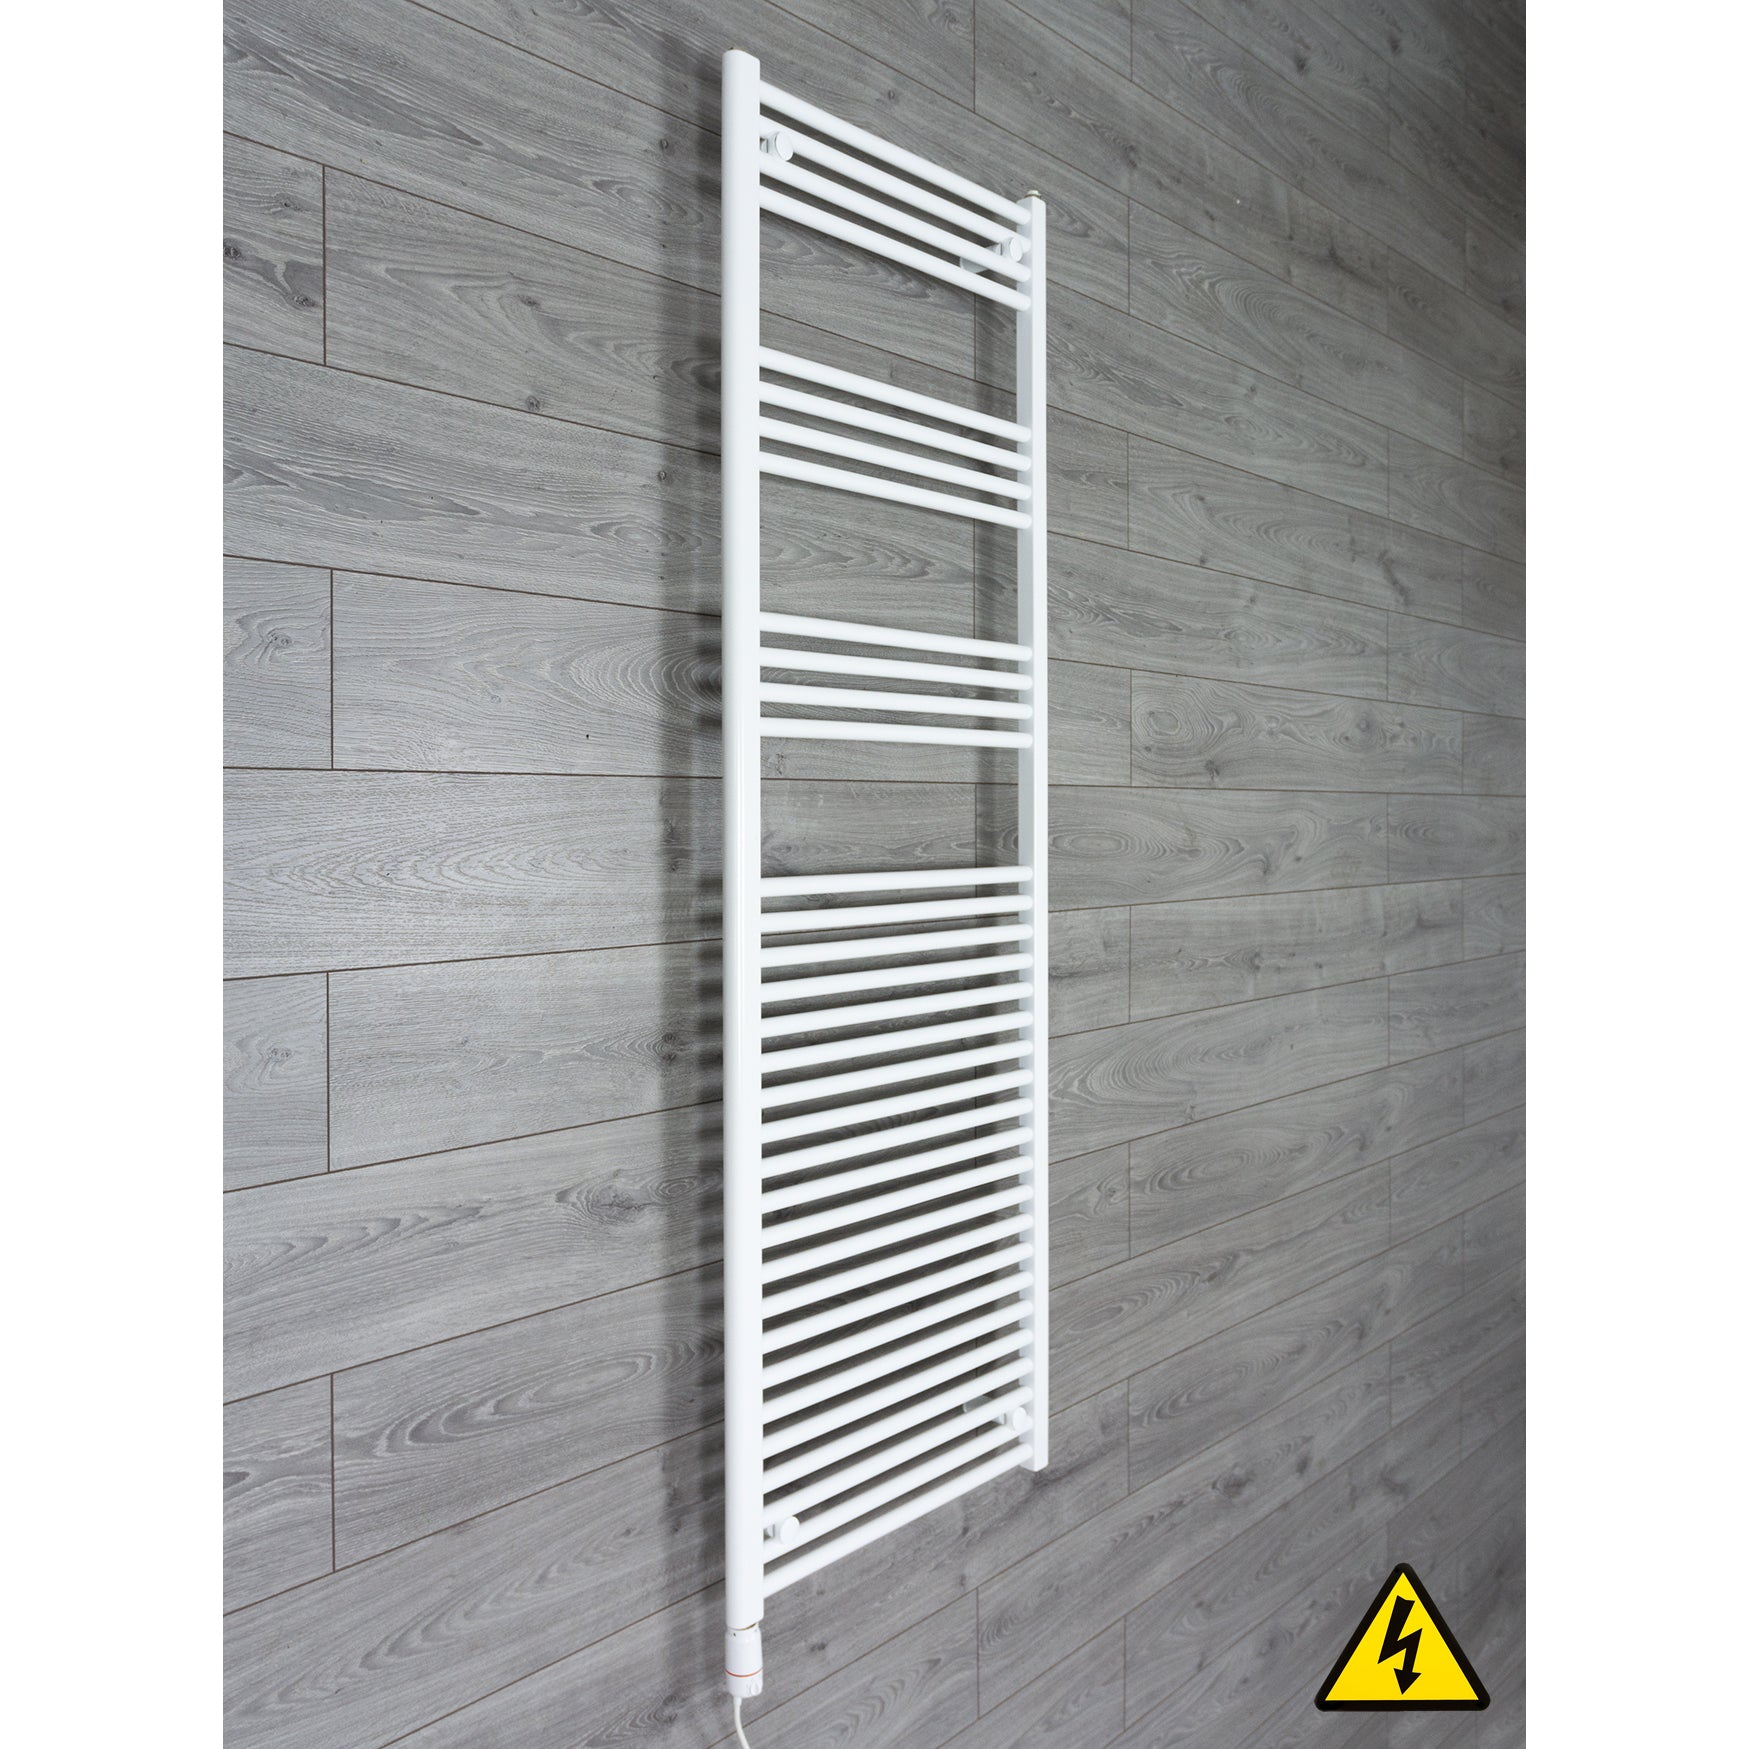 1800 mm High 500 mm Wide Heated Flat Towel Rail Radiator White Central heating or Electric